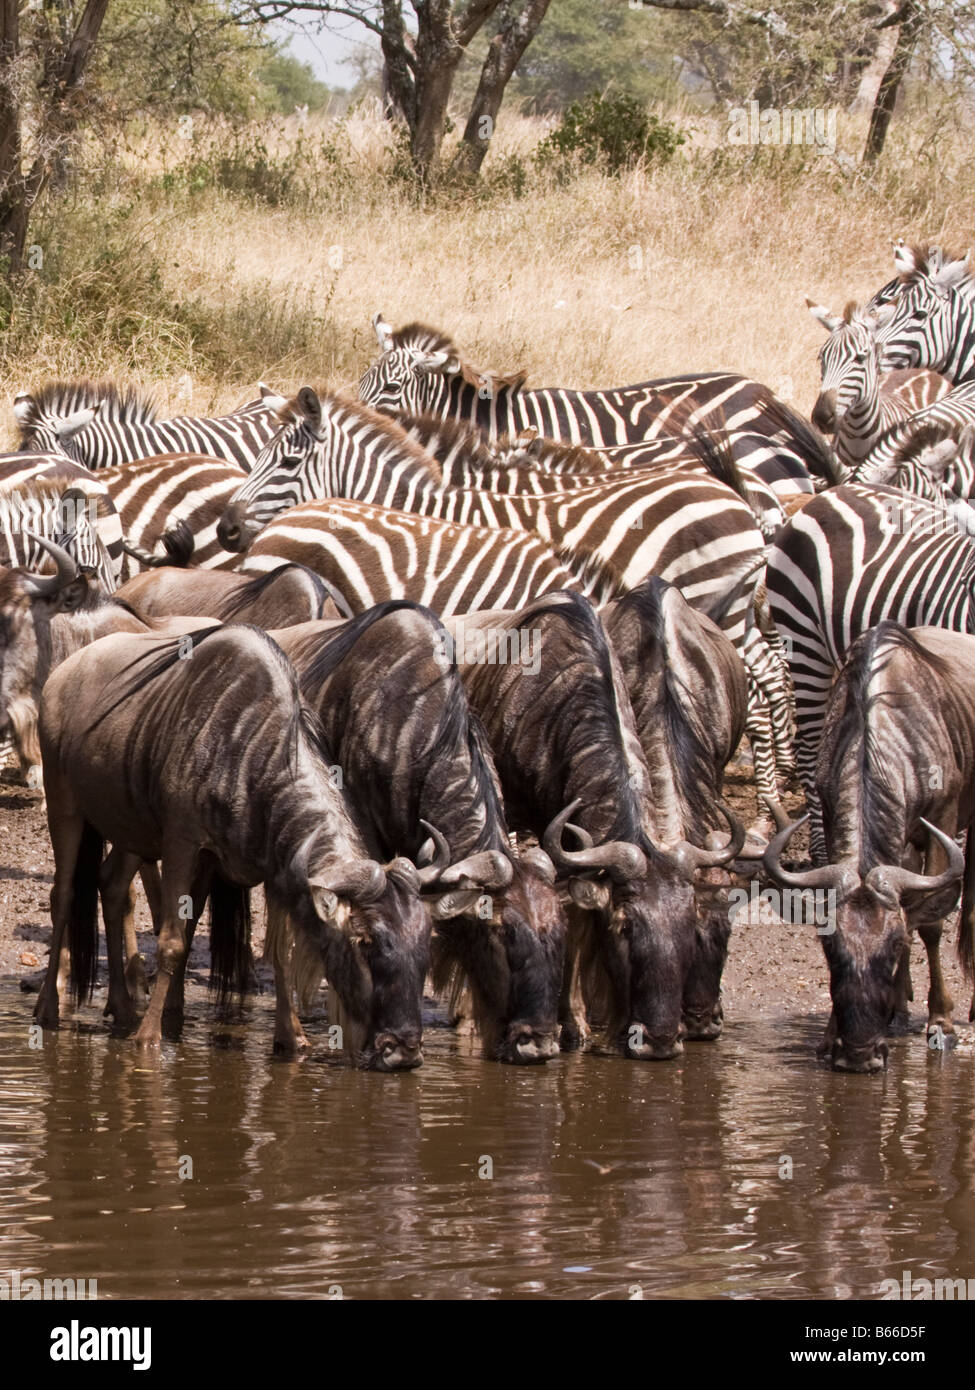 zebra and water buffalo drinking from a watering hole in the serengeti - Stock Image